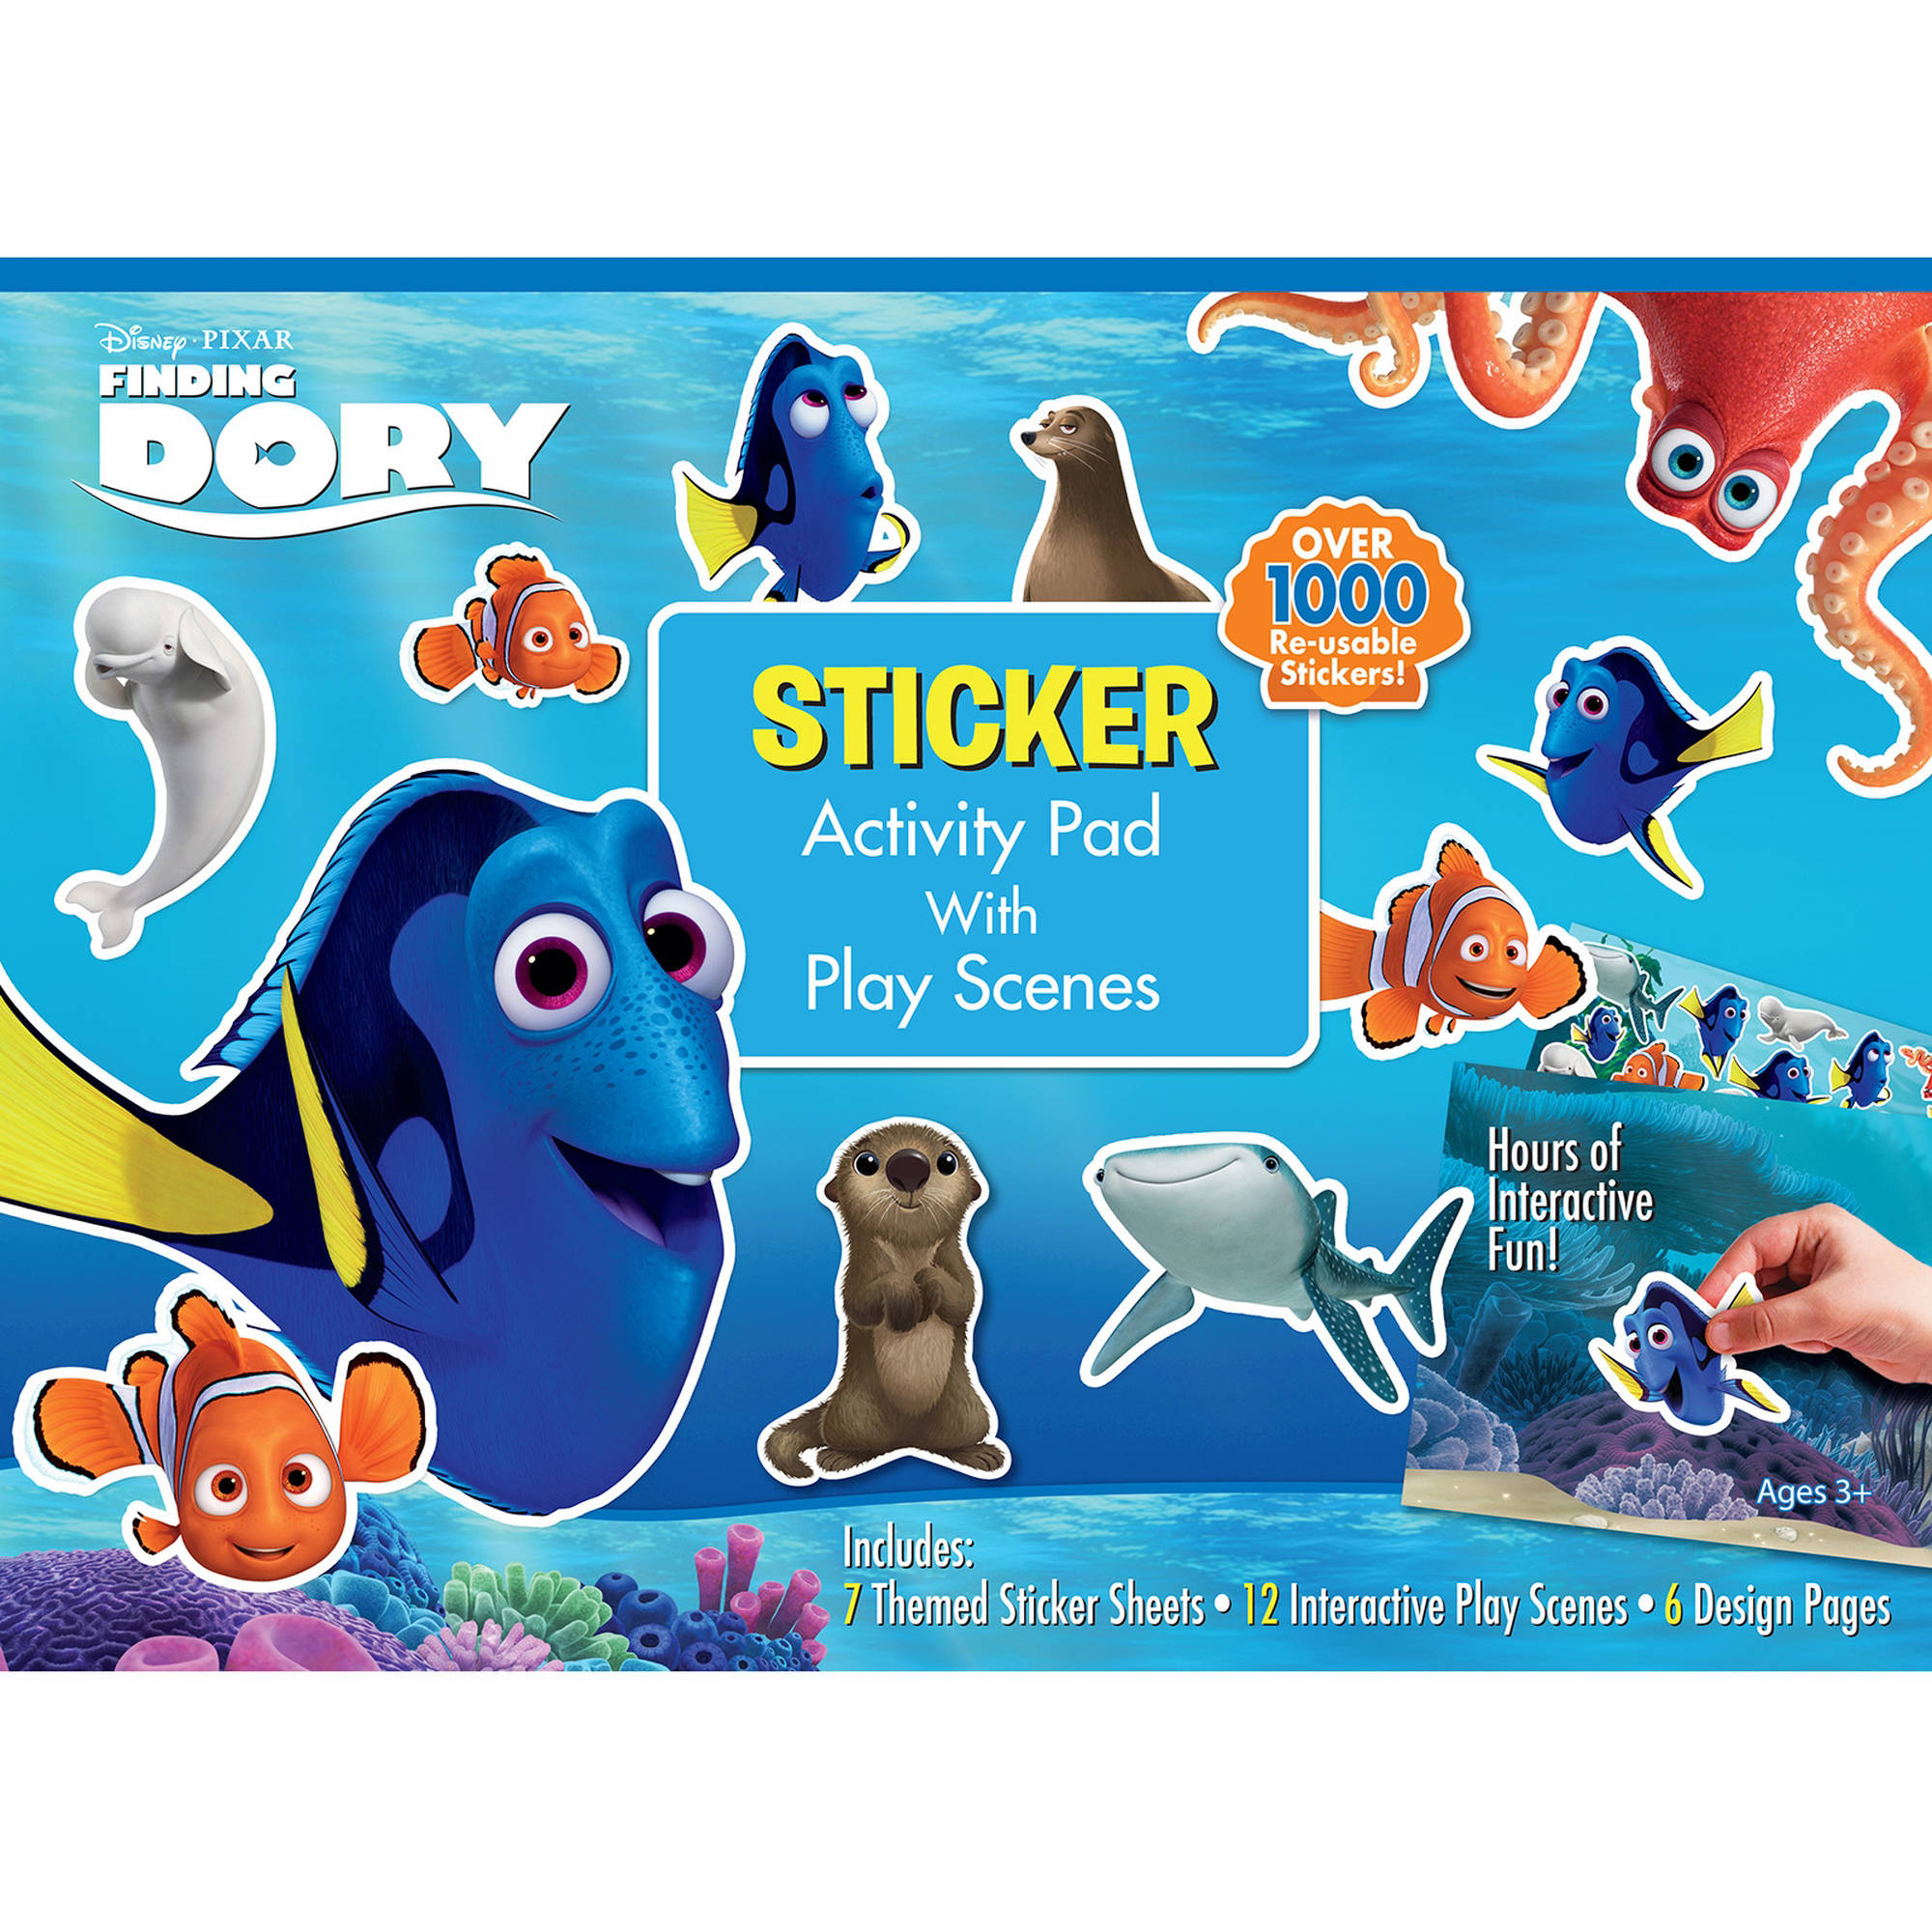 Disney Pixar/'s Finding Dory Sticker Pad Childrens Activity Stickers Party Kids